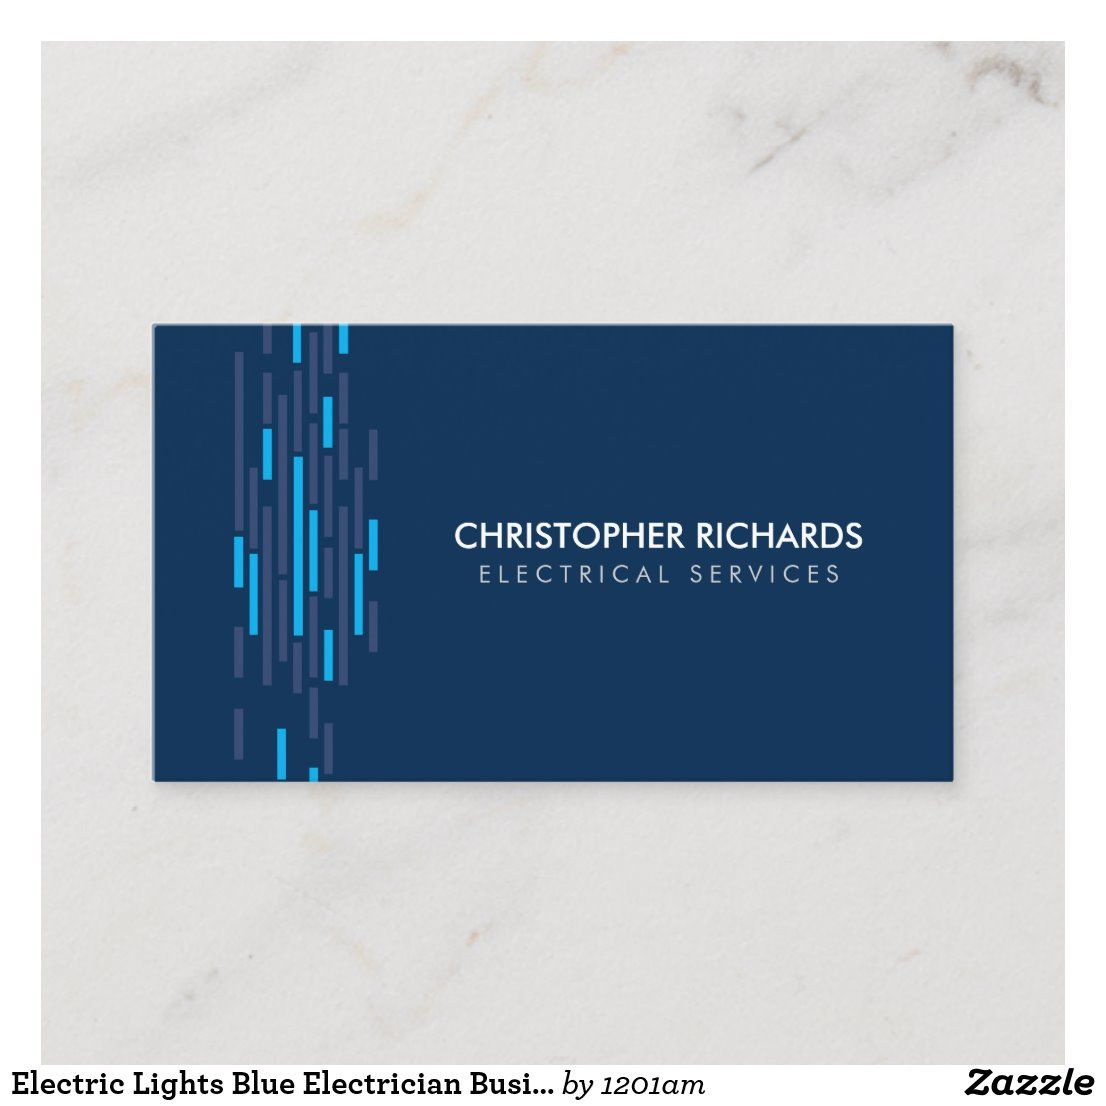 Electric Lights Blue Electrician Business Card Zazzle Com Electric Lighter Electrician Electricity